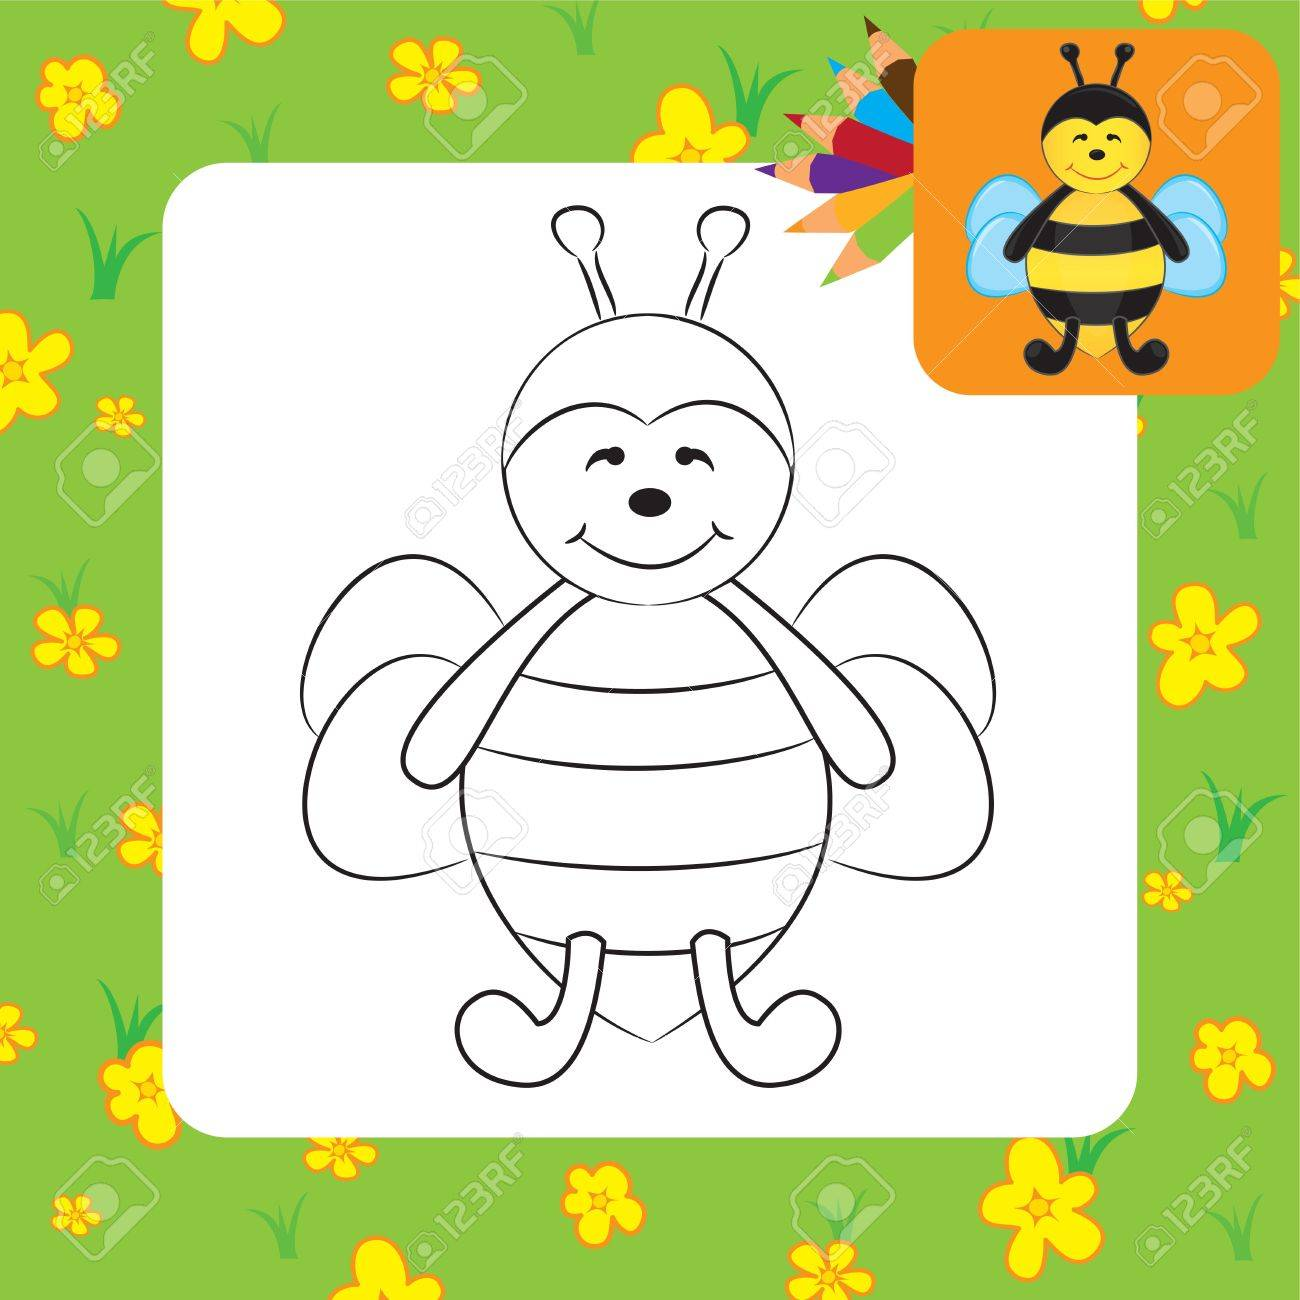 Cute Cartoon Bee Coloring Page Vector Illustration Royalty Free Cliparts Vectors And Stock Illustration Image 22895441